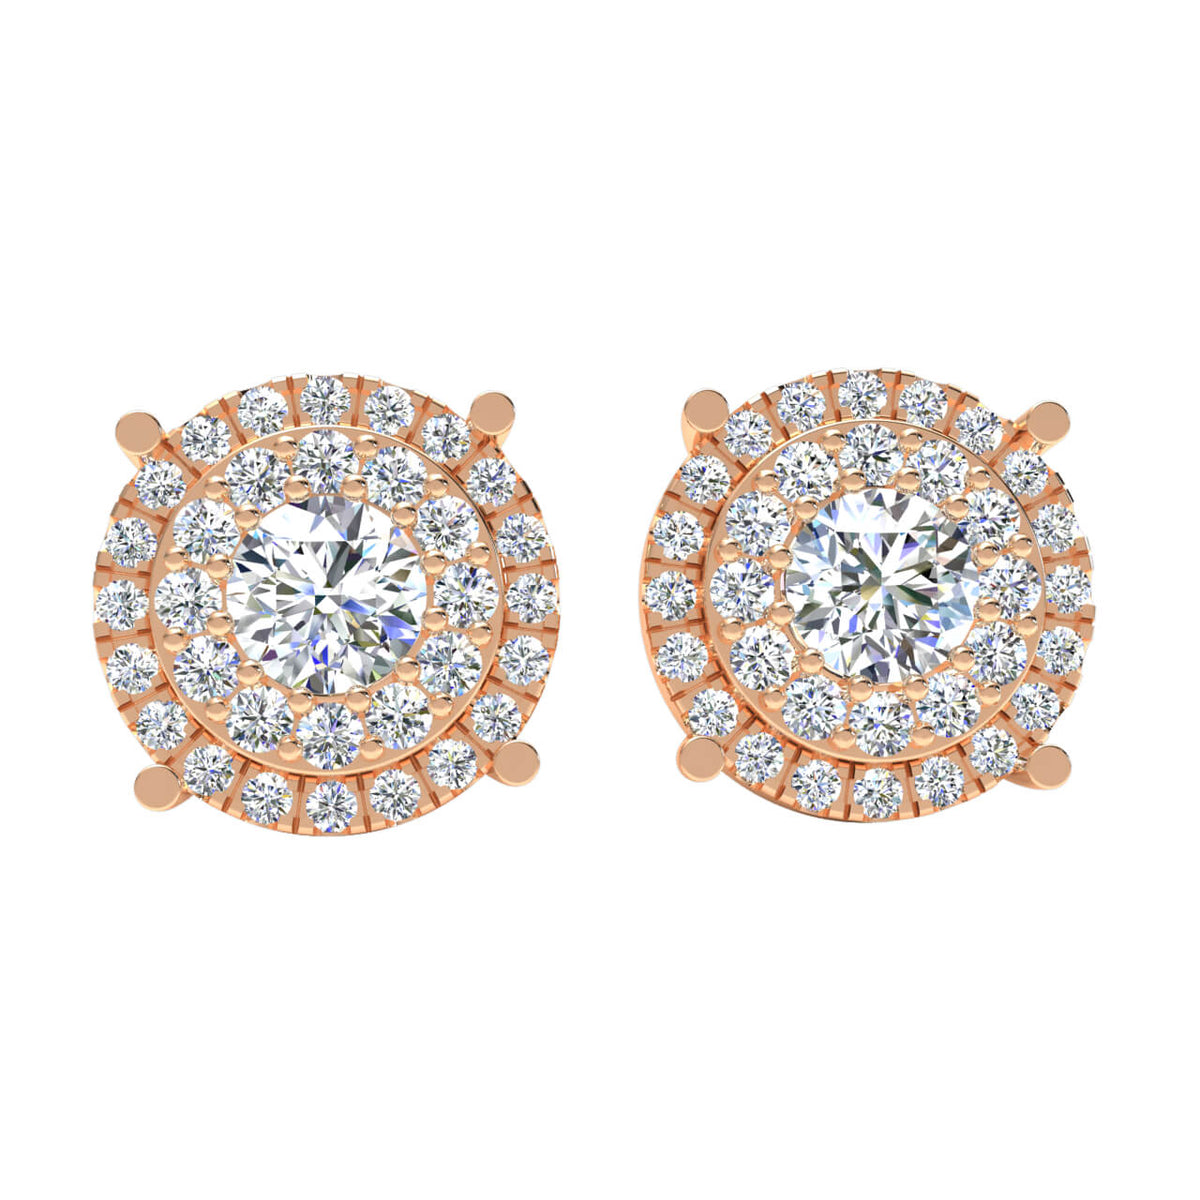 1.90 Ct Halo Round FG VS Diamond Stud Earrings For Adults 14k Gold